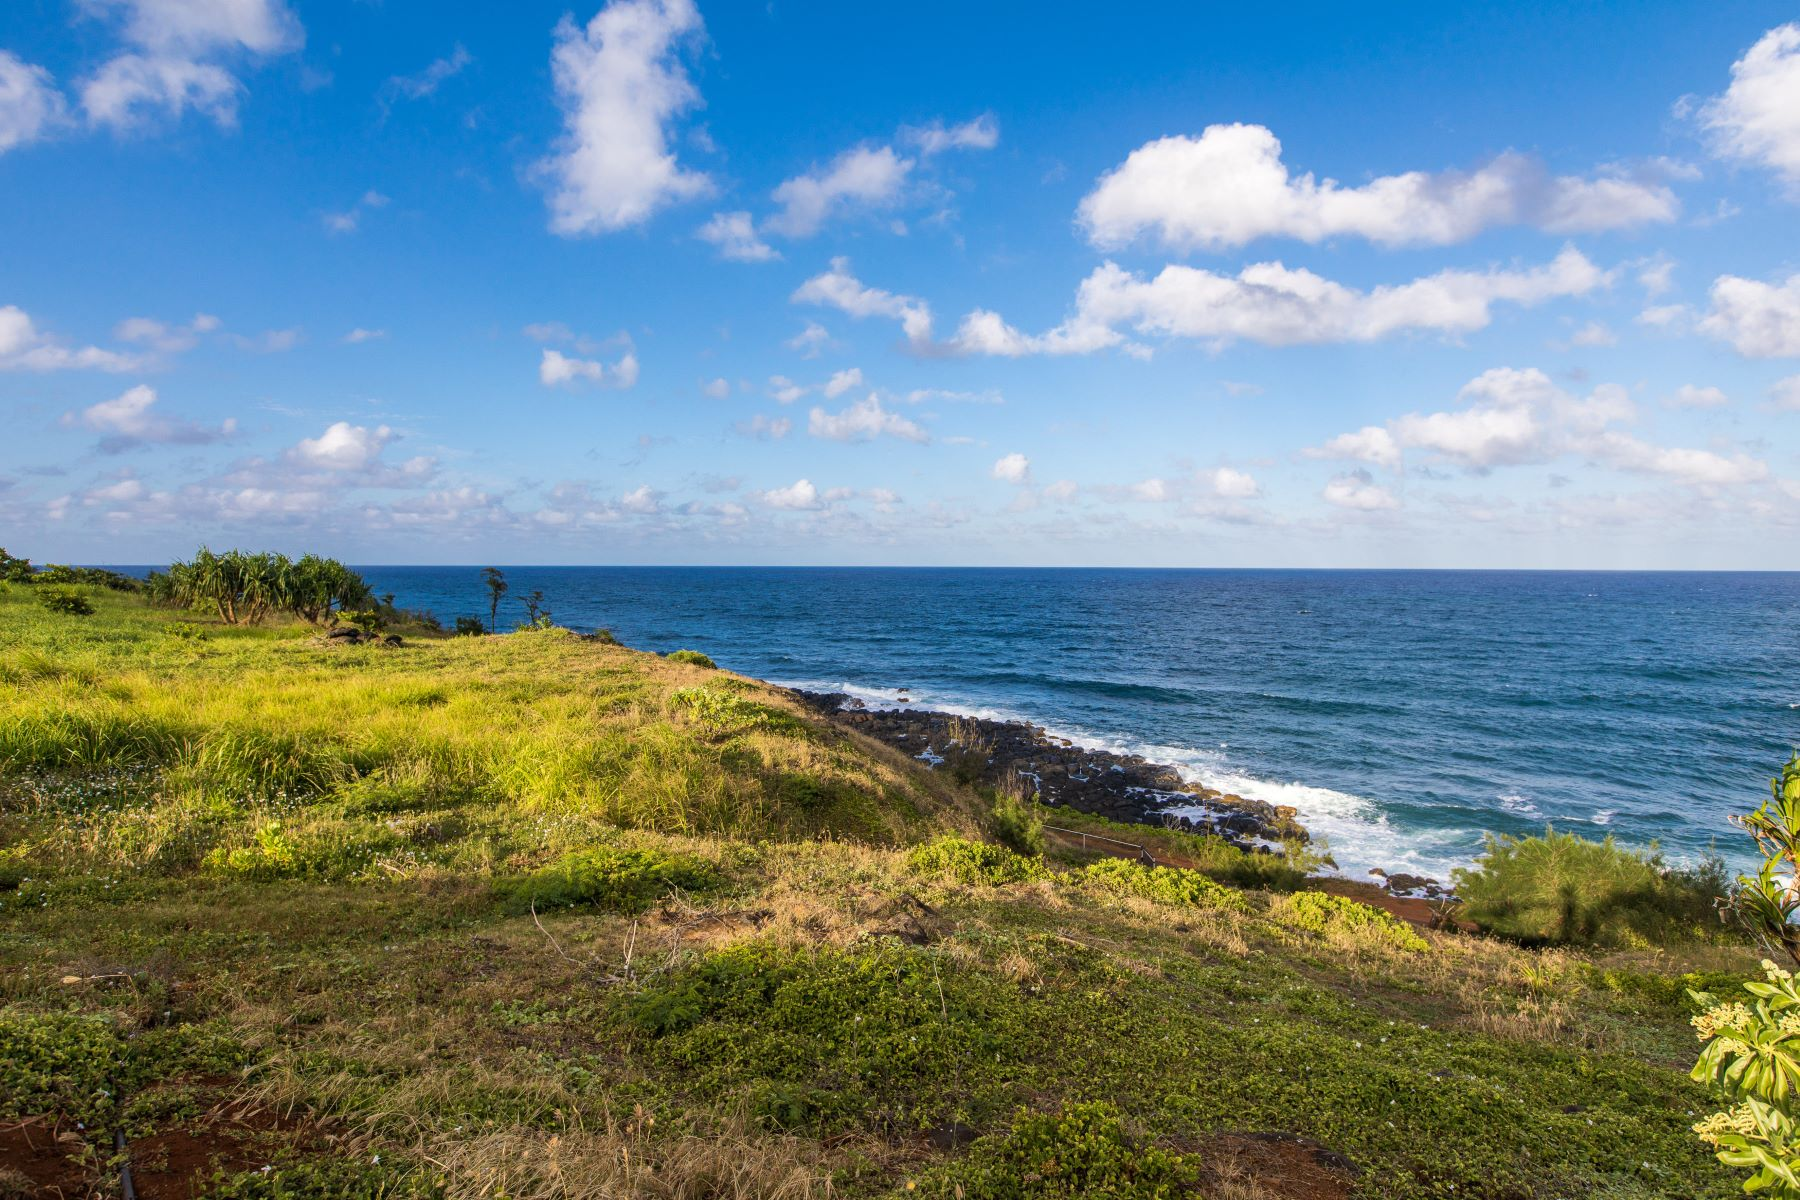 Single Family Home for Sale at Stunning Ocean Views 2622-G Kapoli St Kealia, Hawaii 96751 United States